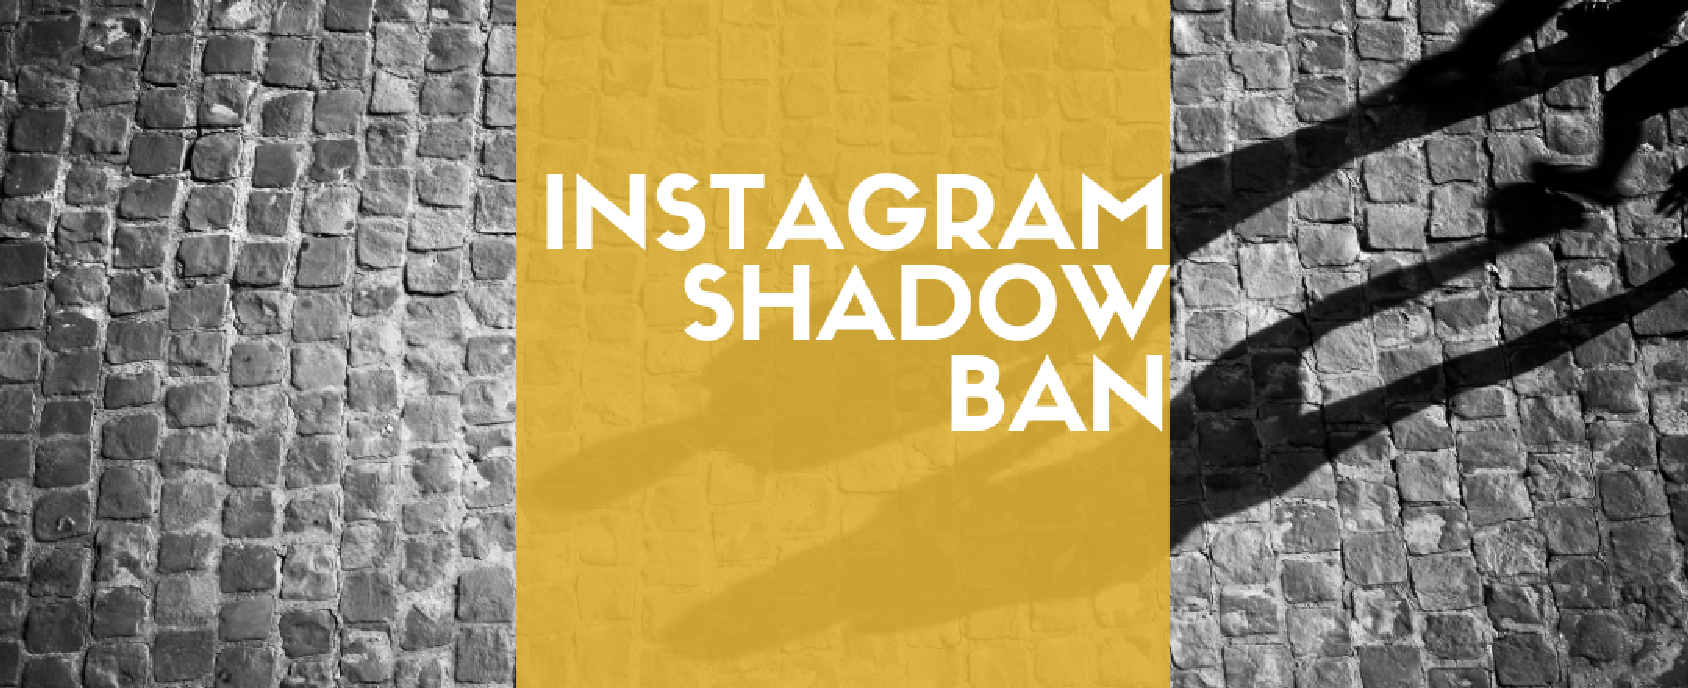 Instagram Shadowban: What Is It And How Can You Avoid It? | Molly